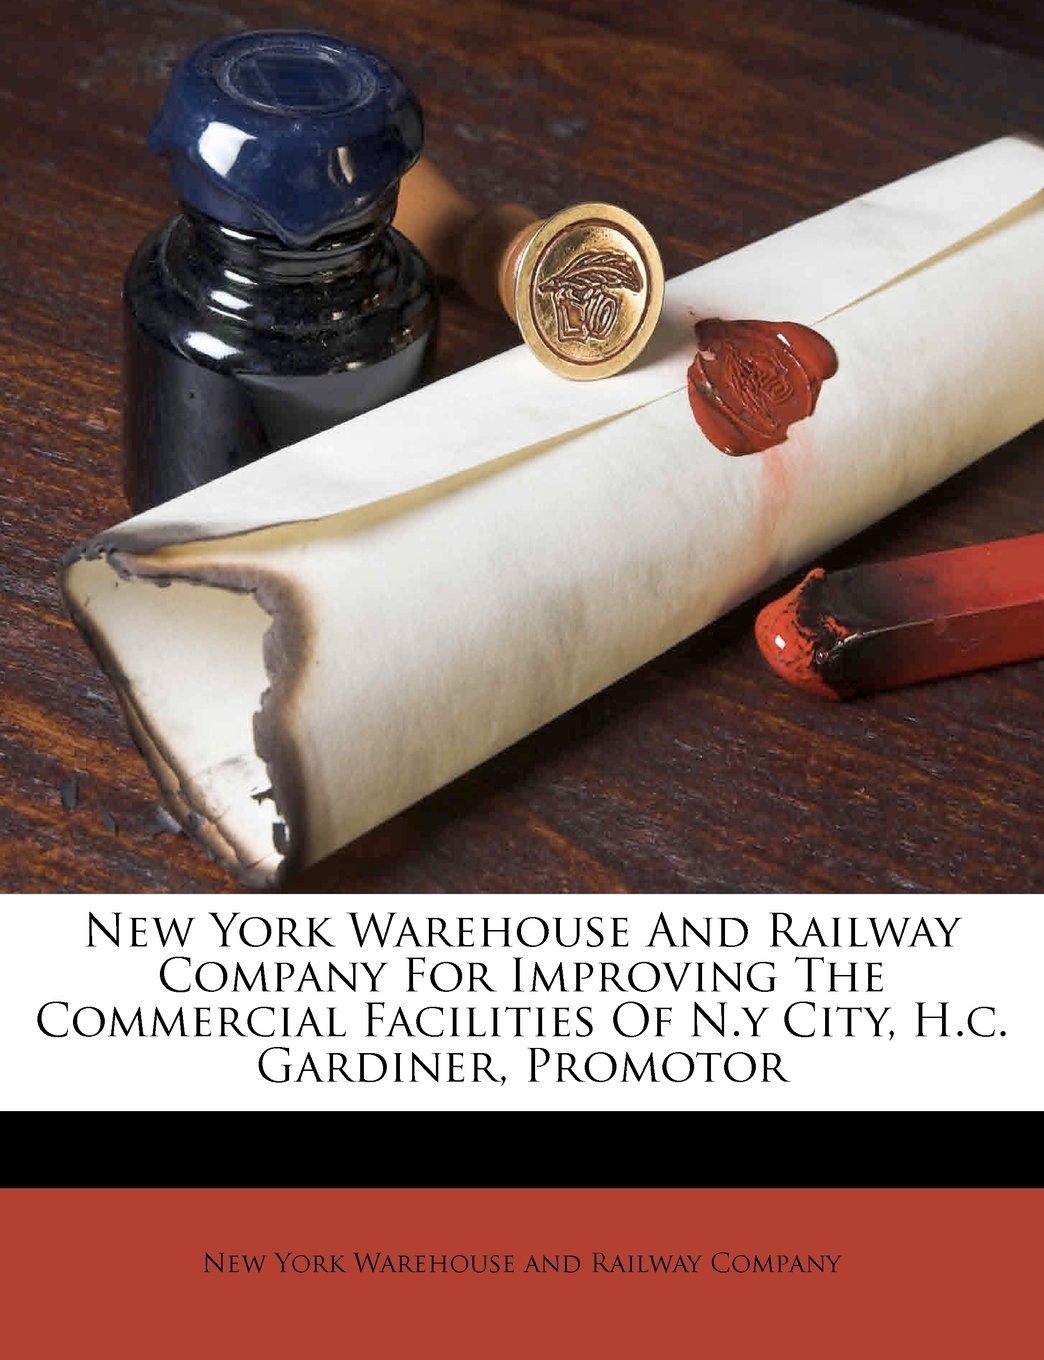 Download New York Warehouse And Railway Company For Improving The Commercial Facilities Of N.y City, H.c. Gardiner, Promotor ebook